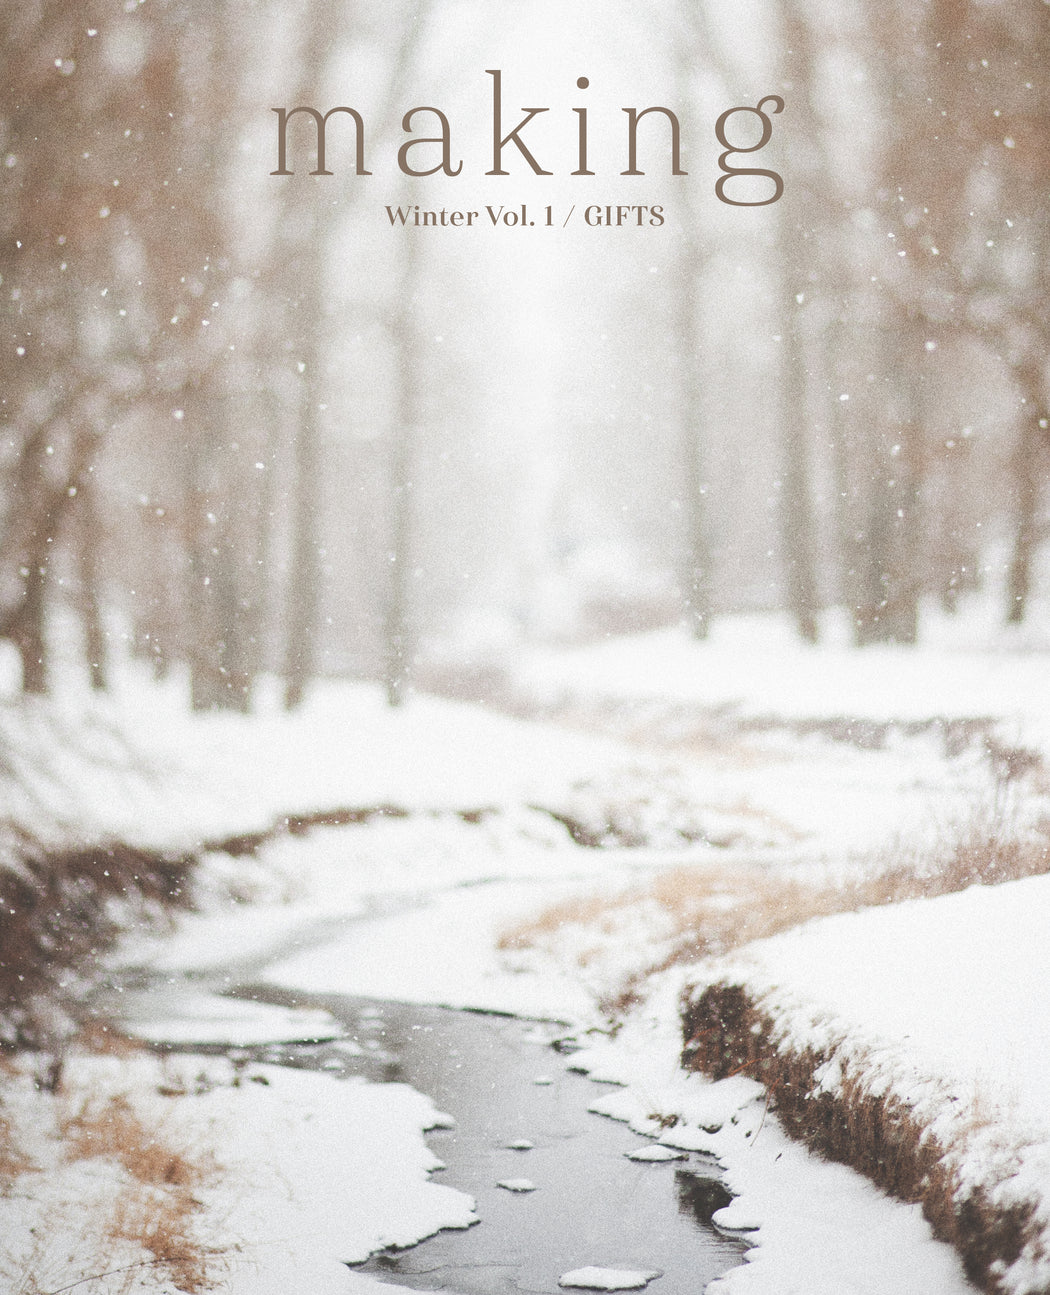 2020 Subscription to Making: No. 9 & 10 and Winter Vol. 1 / GIFTS